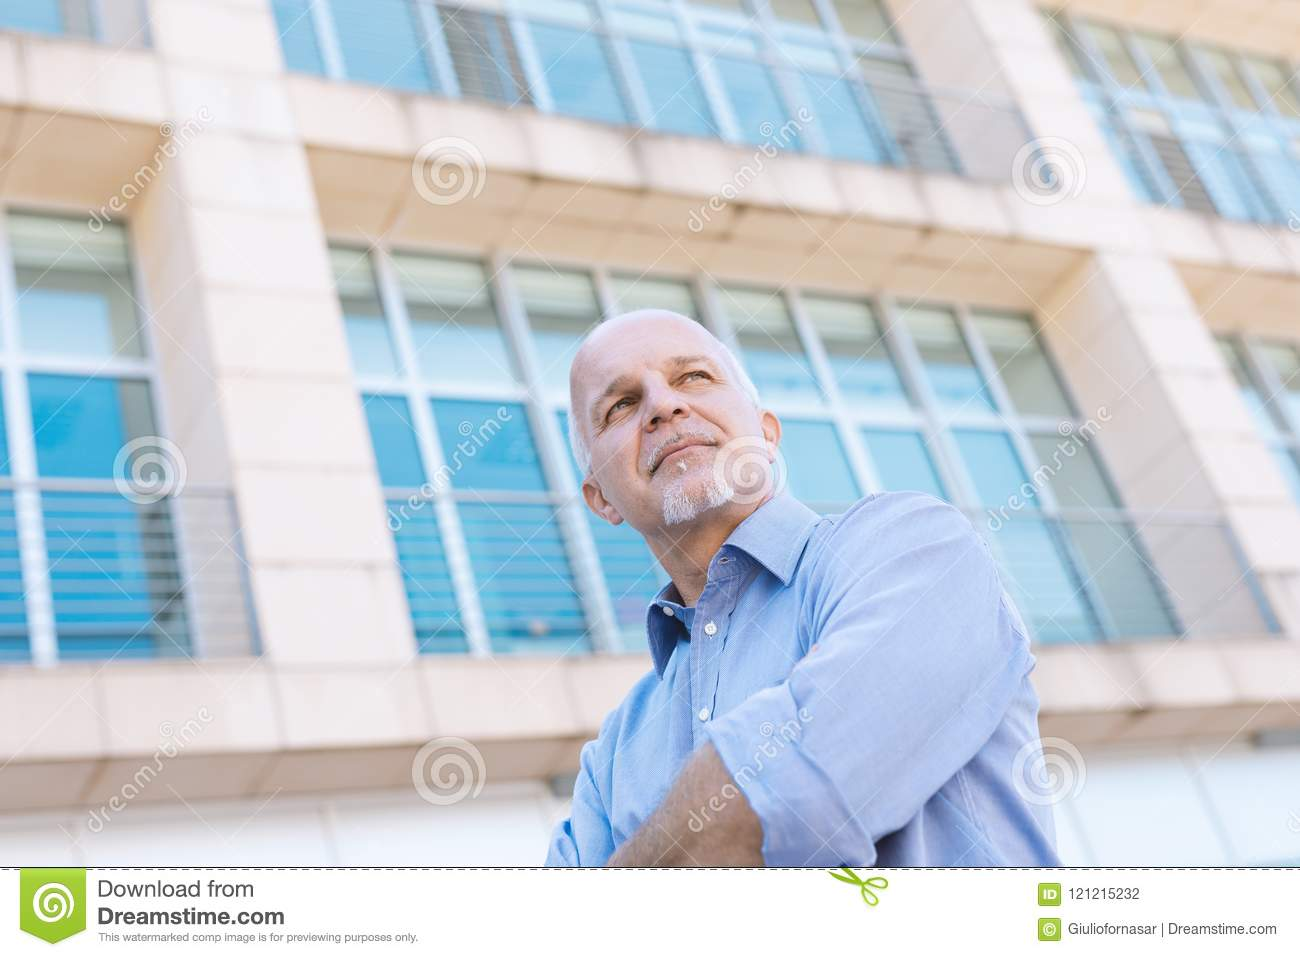 Low angle view of senior man looking off